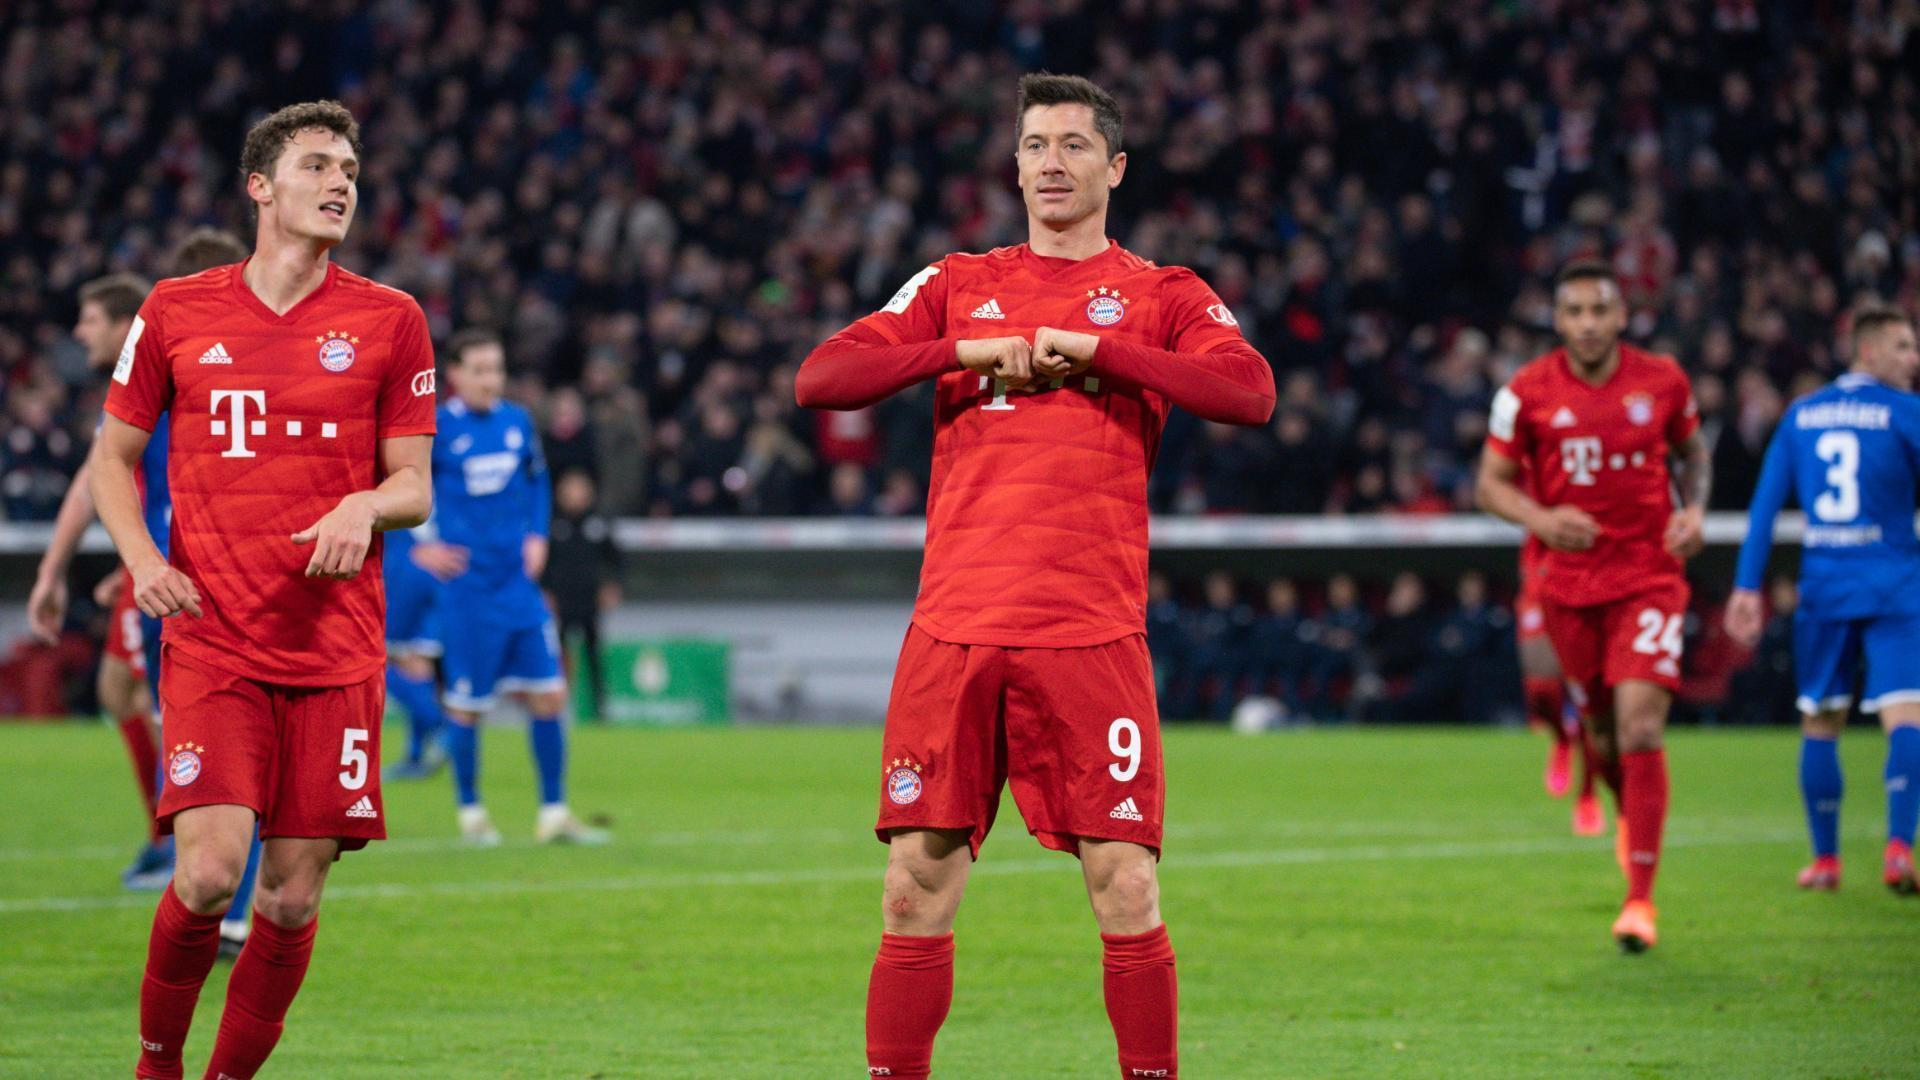 Lewandowski extends Bayern's lead